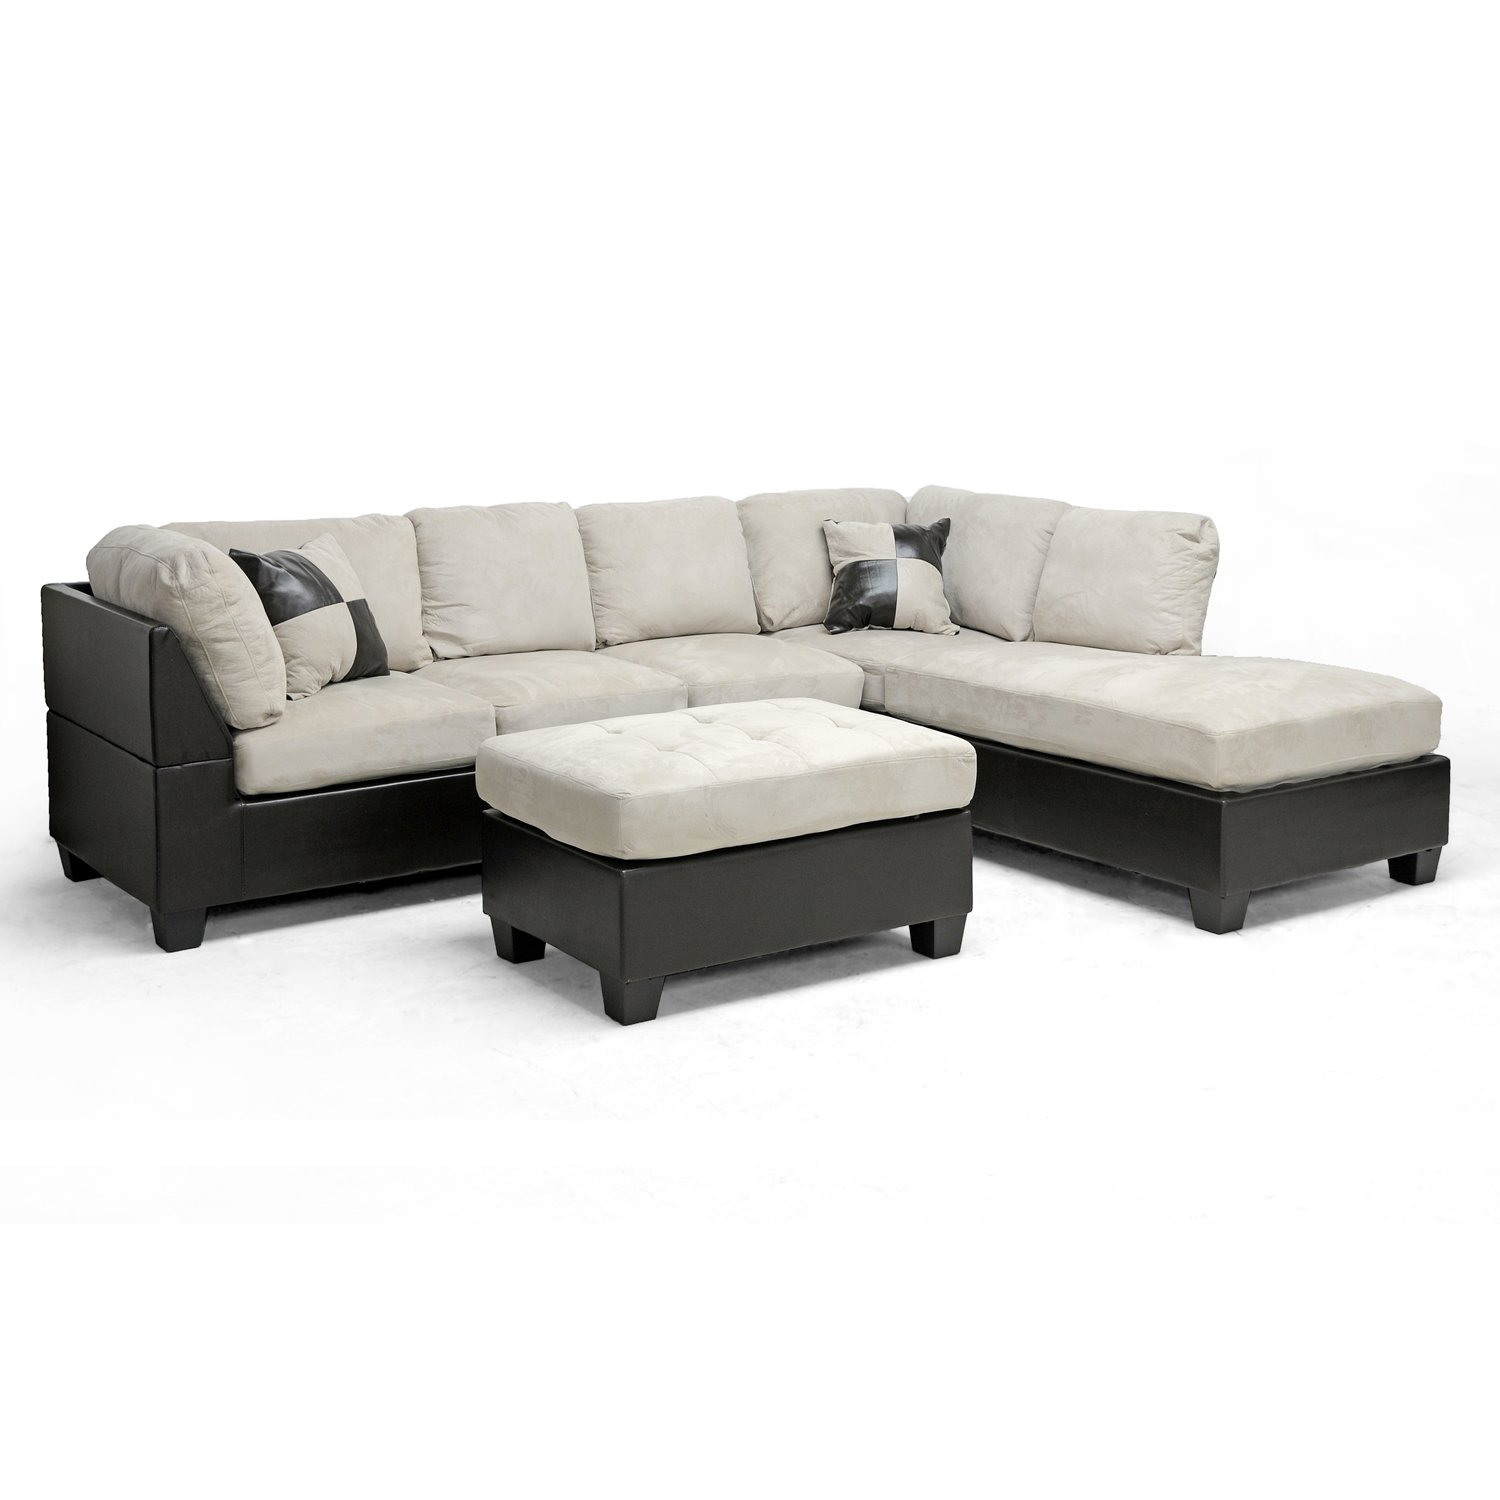 Amazon Baxton Studio Mancini Modern Sectional Sofa and